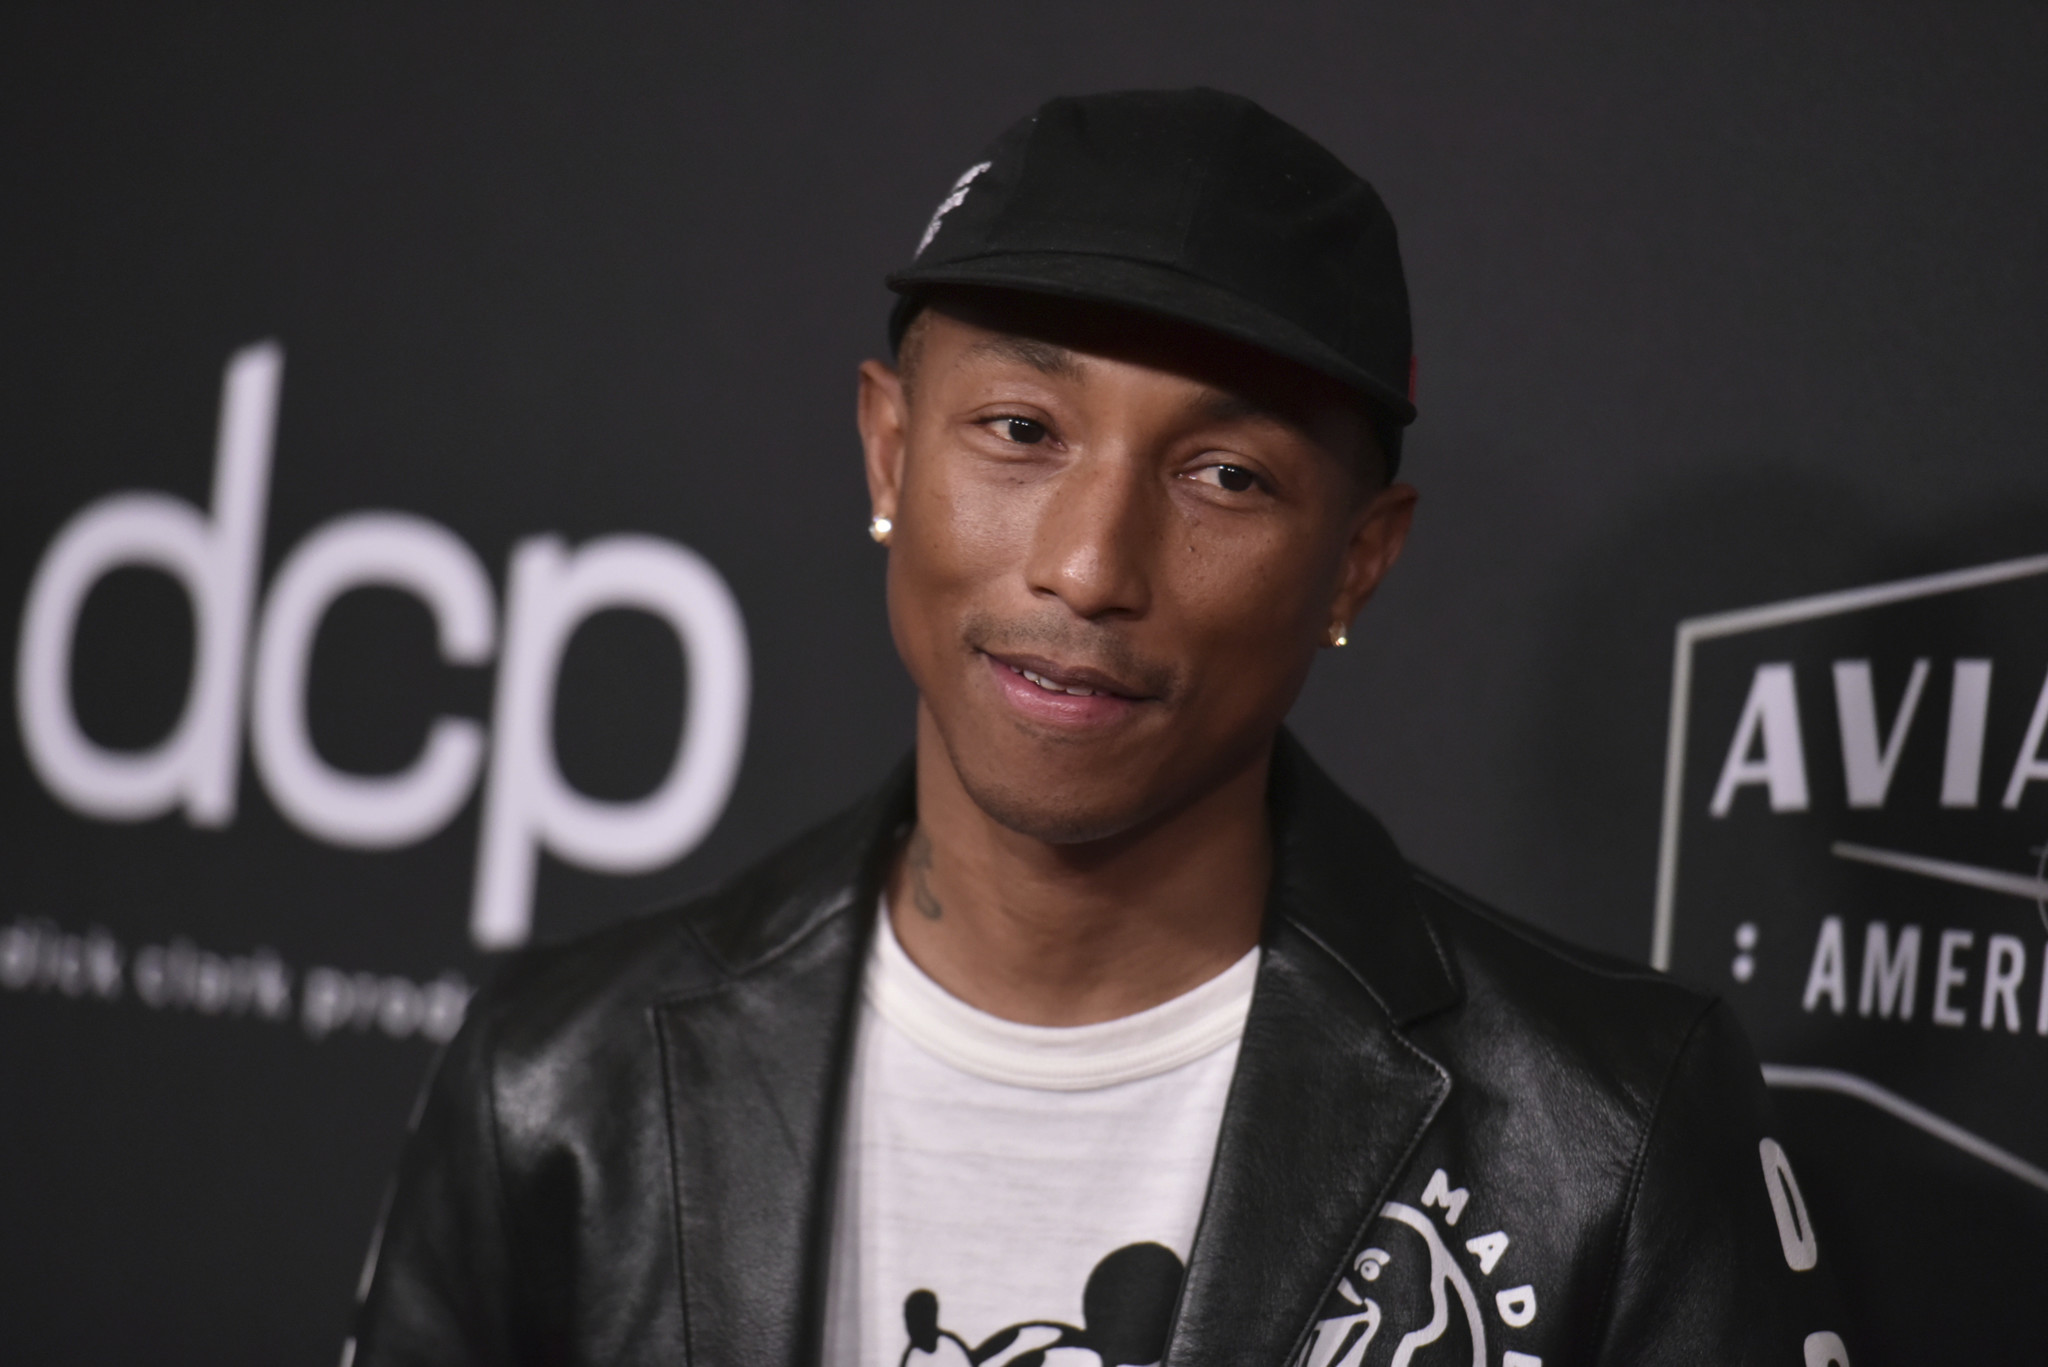 Pharrell Williams is joining the Rock and Roll Hall of Fame Foundation's board of directors